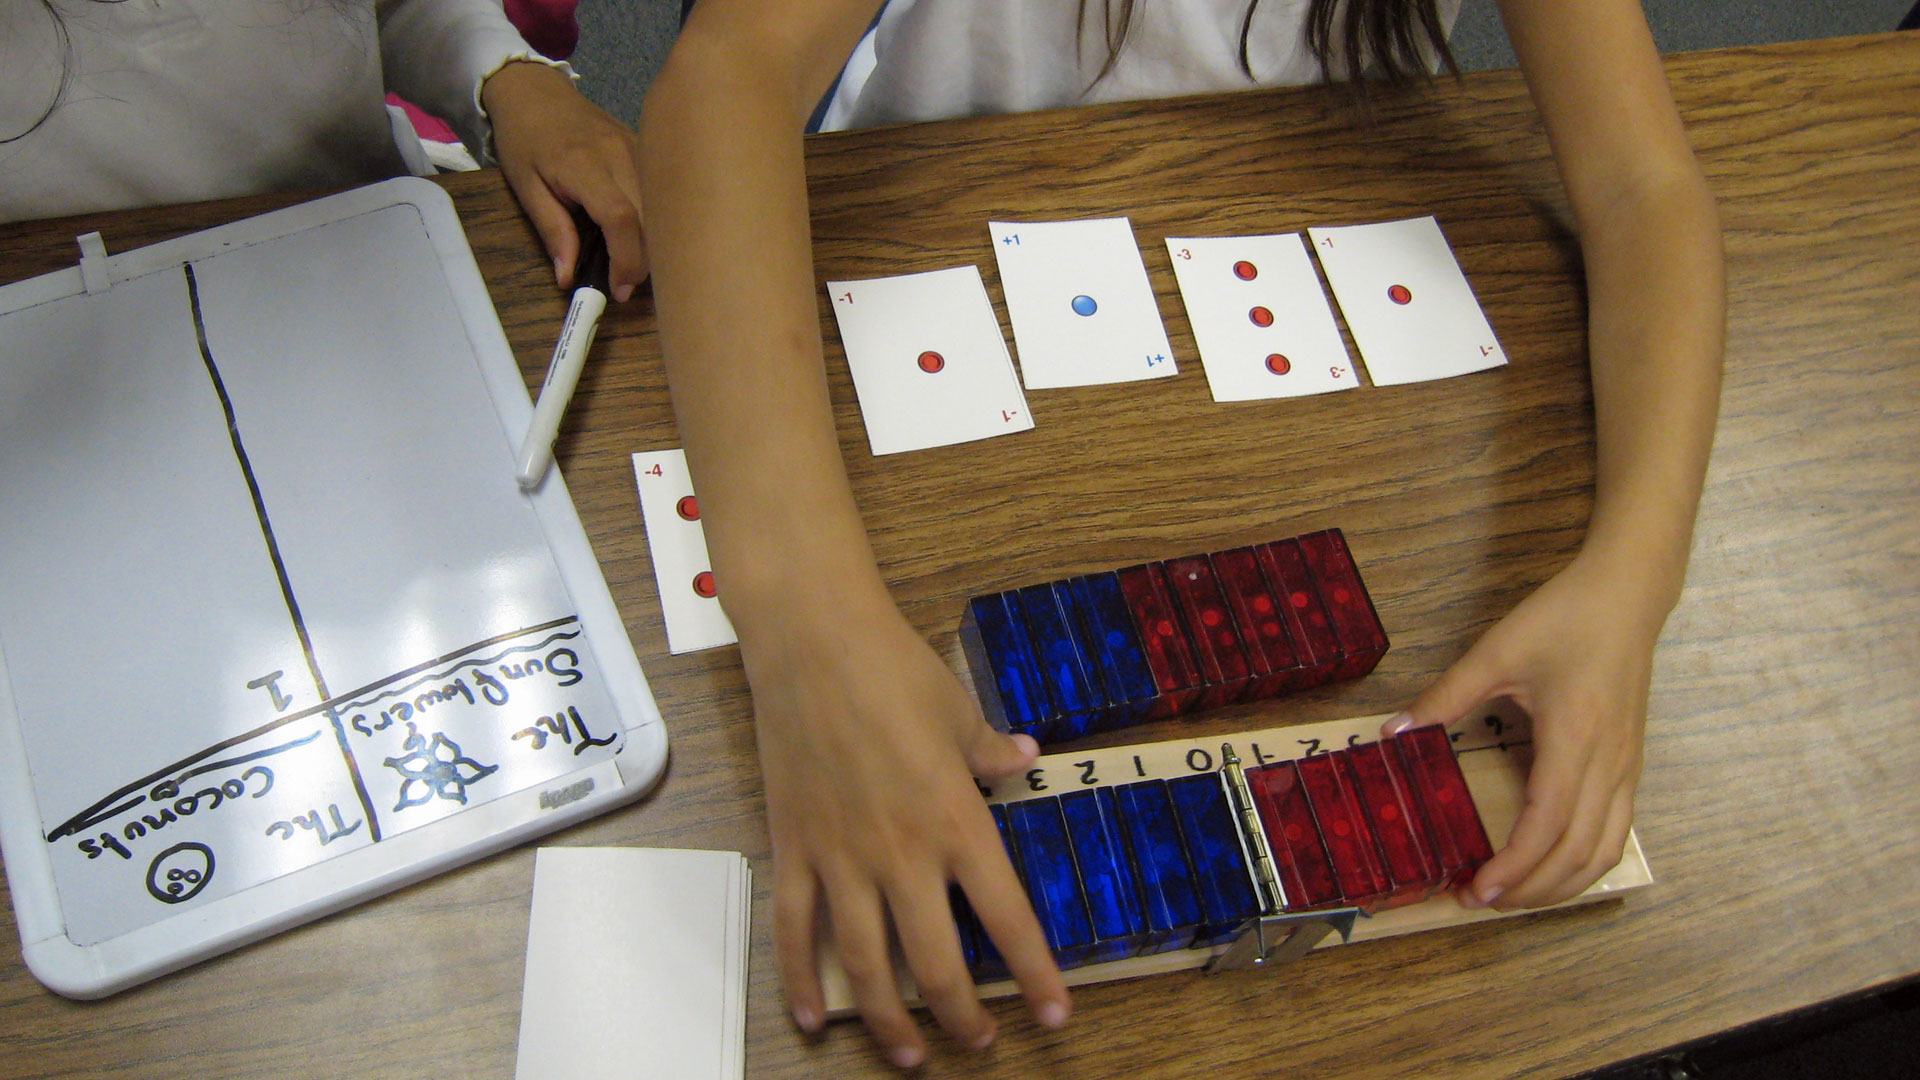 Researchers from Stanford's AAALab built a manipulative to emphasize symmetry and tested it on 4th graders.